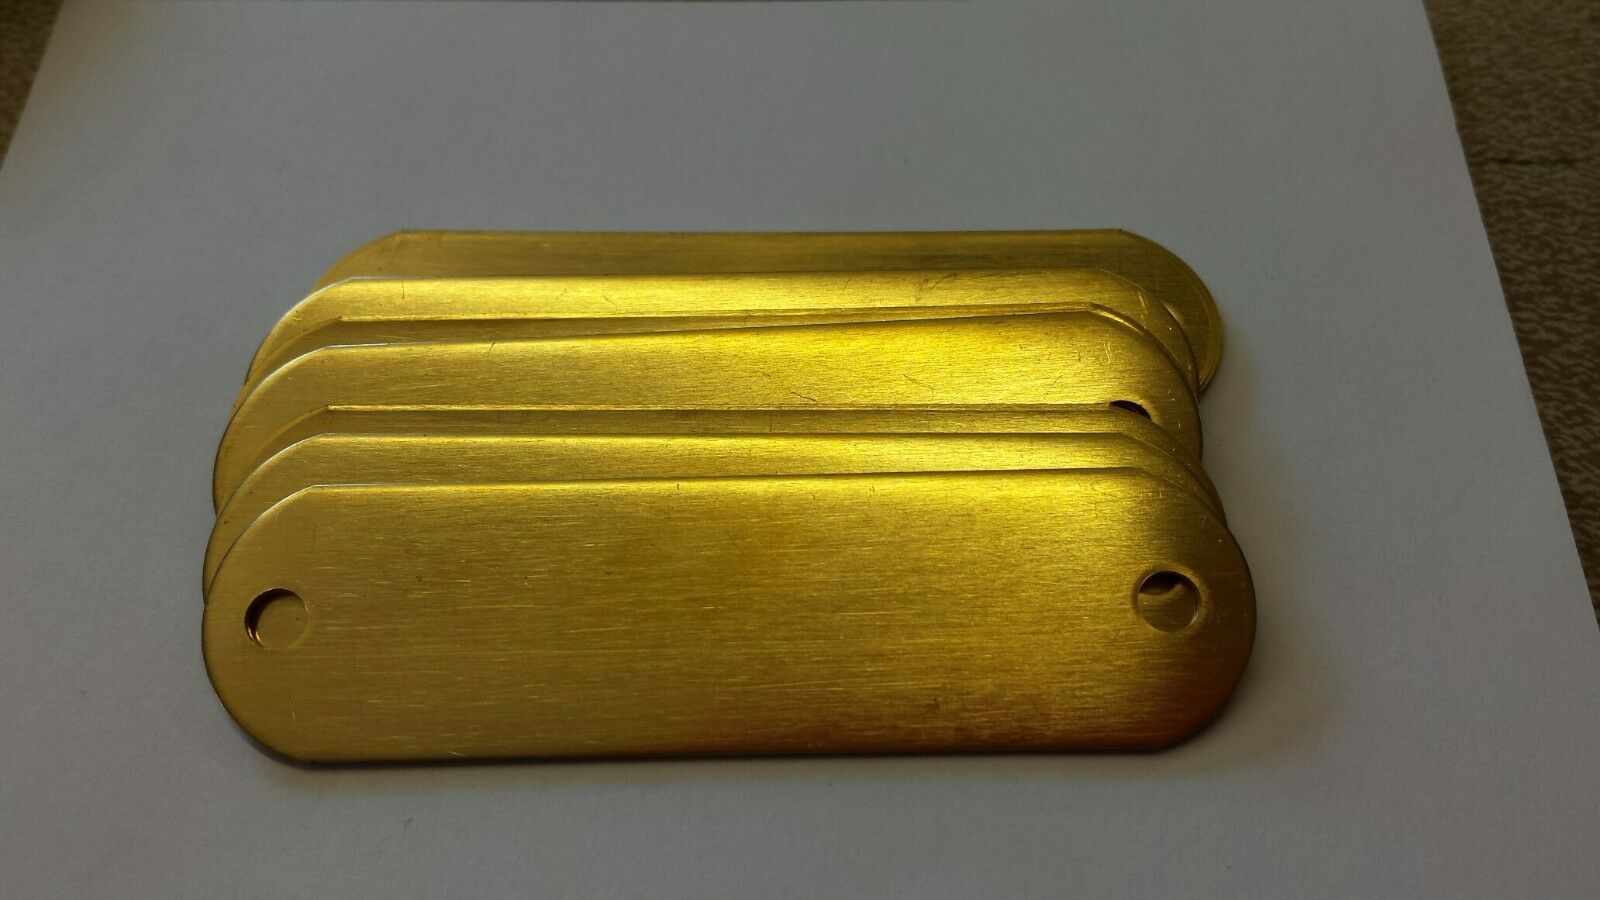 500 Blank Brass Identification tags for Dog Collars